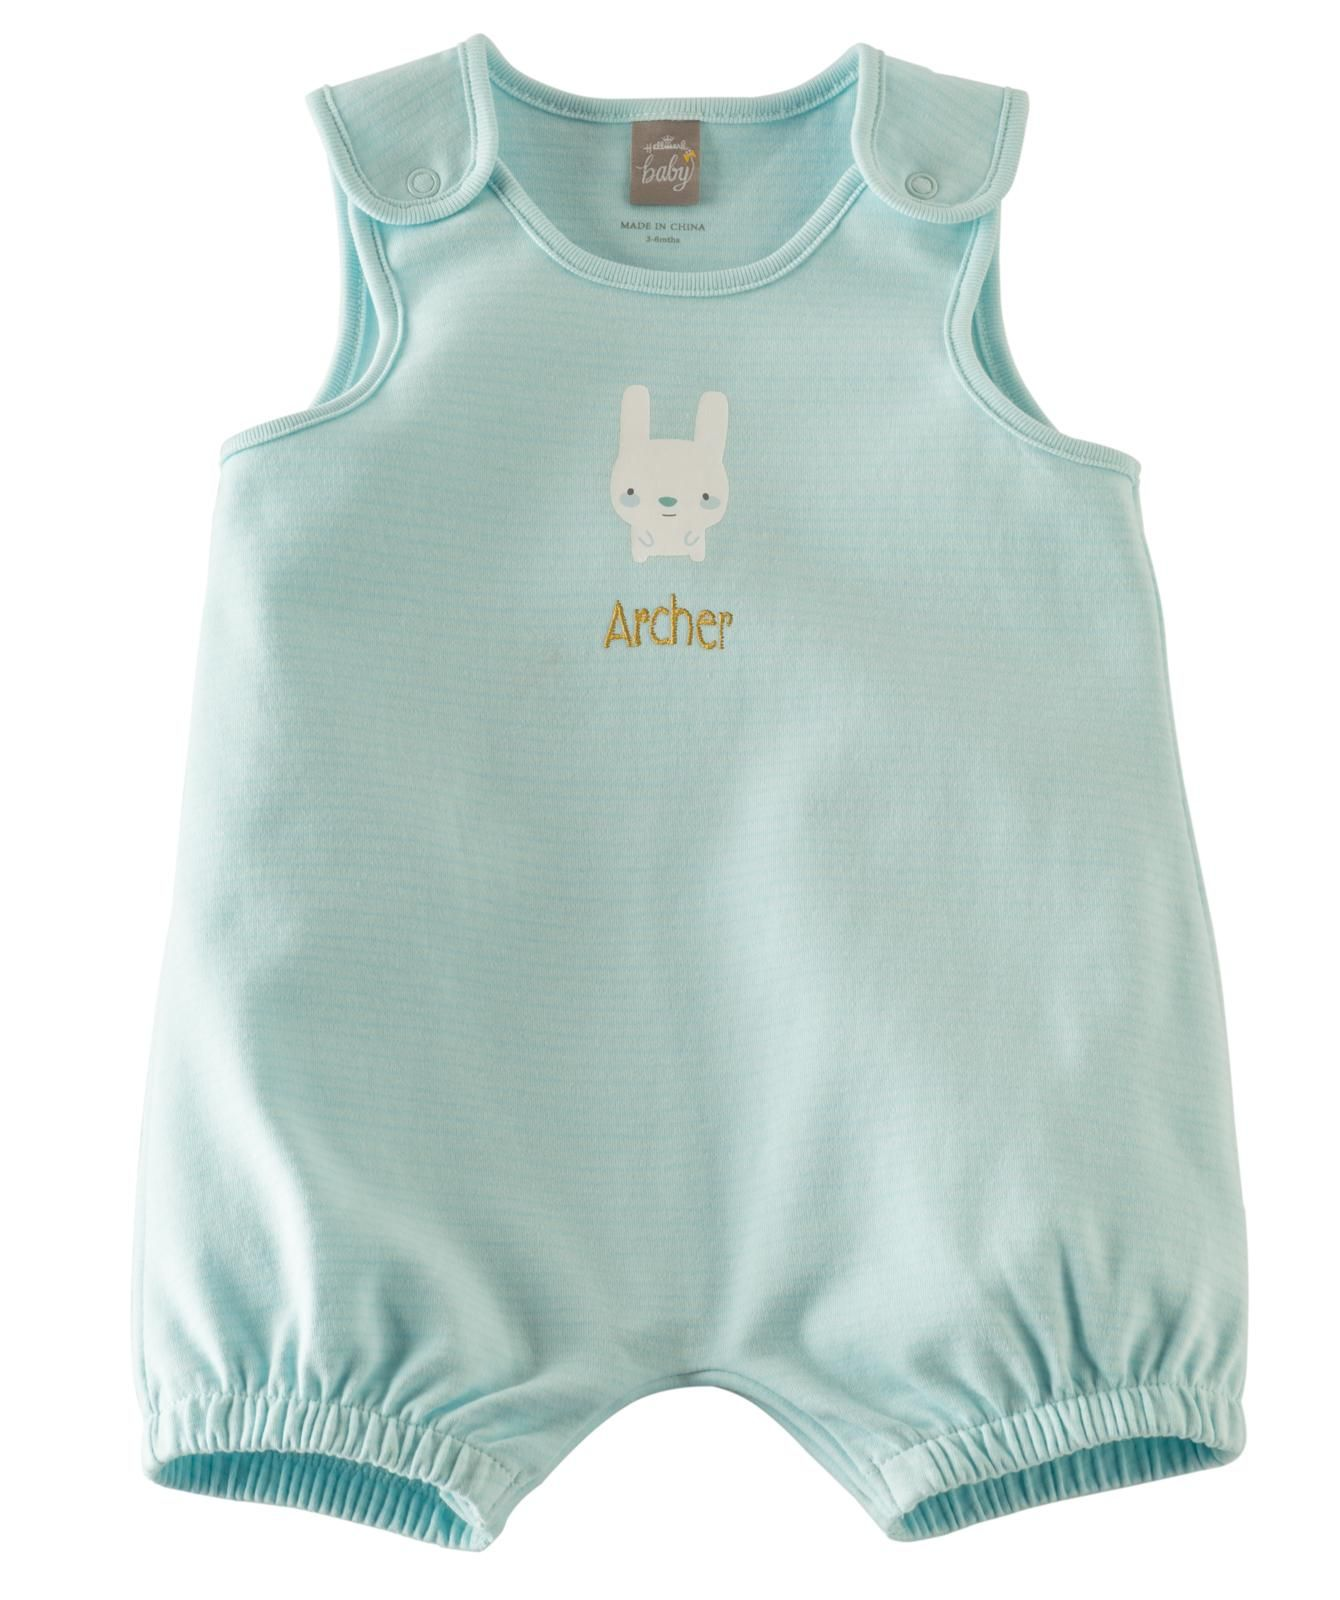 407819eba6c7 Sweet summer romper for baby you can personalize with custom ...